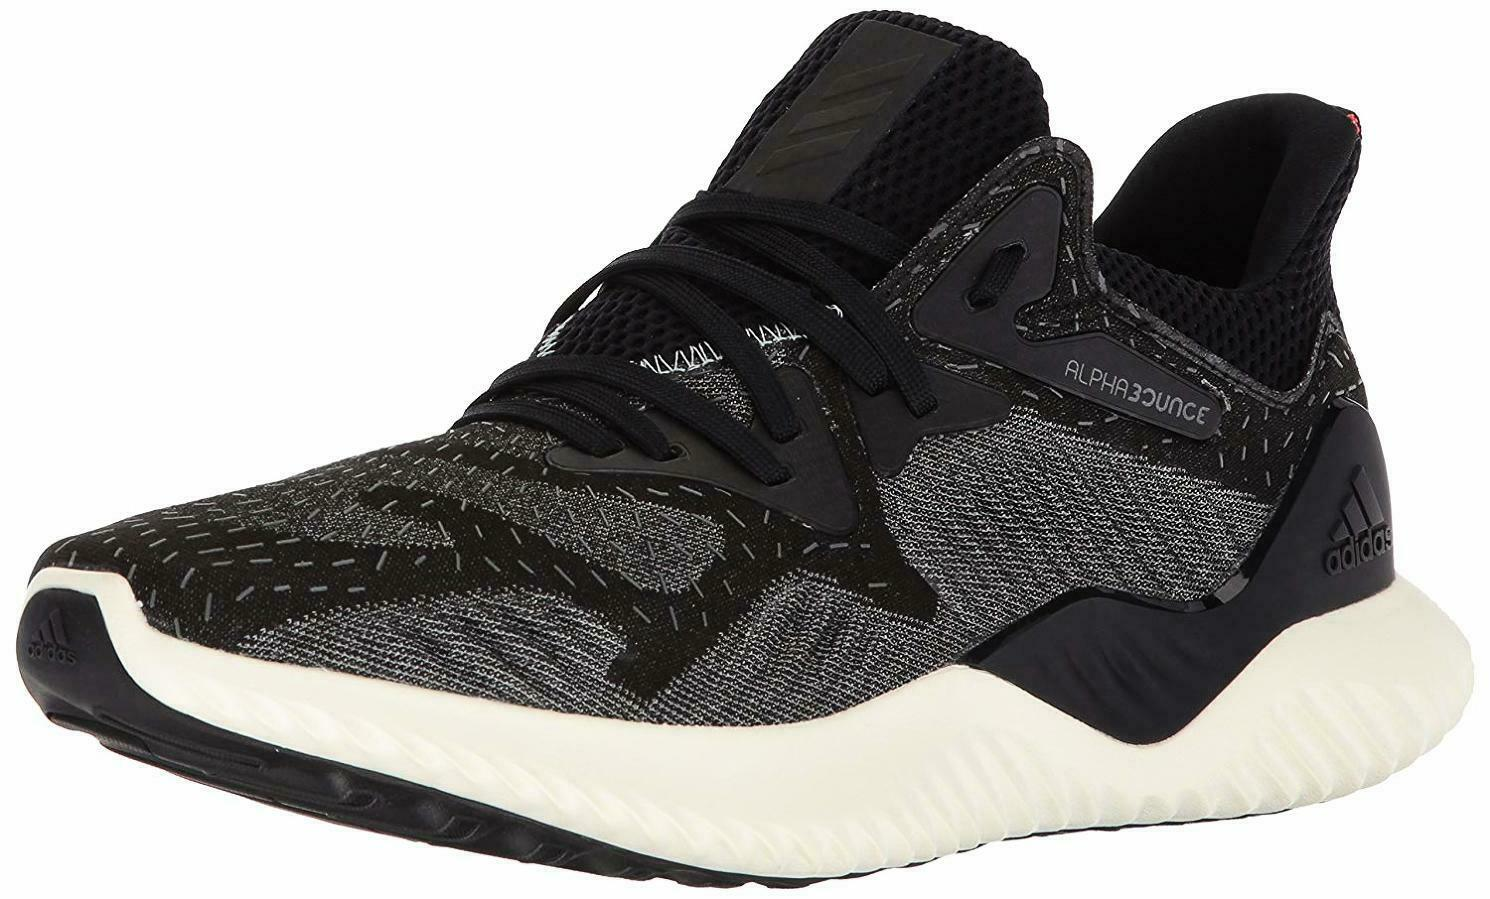 c16d1b72178ef Adidas Beyond Running shoes m Alphabounce nnhmkl1497-Athletic Shoes ...